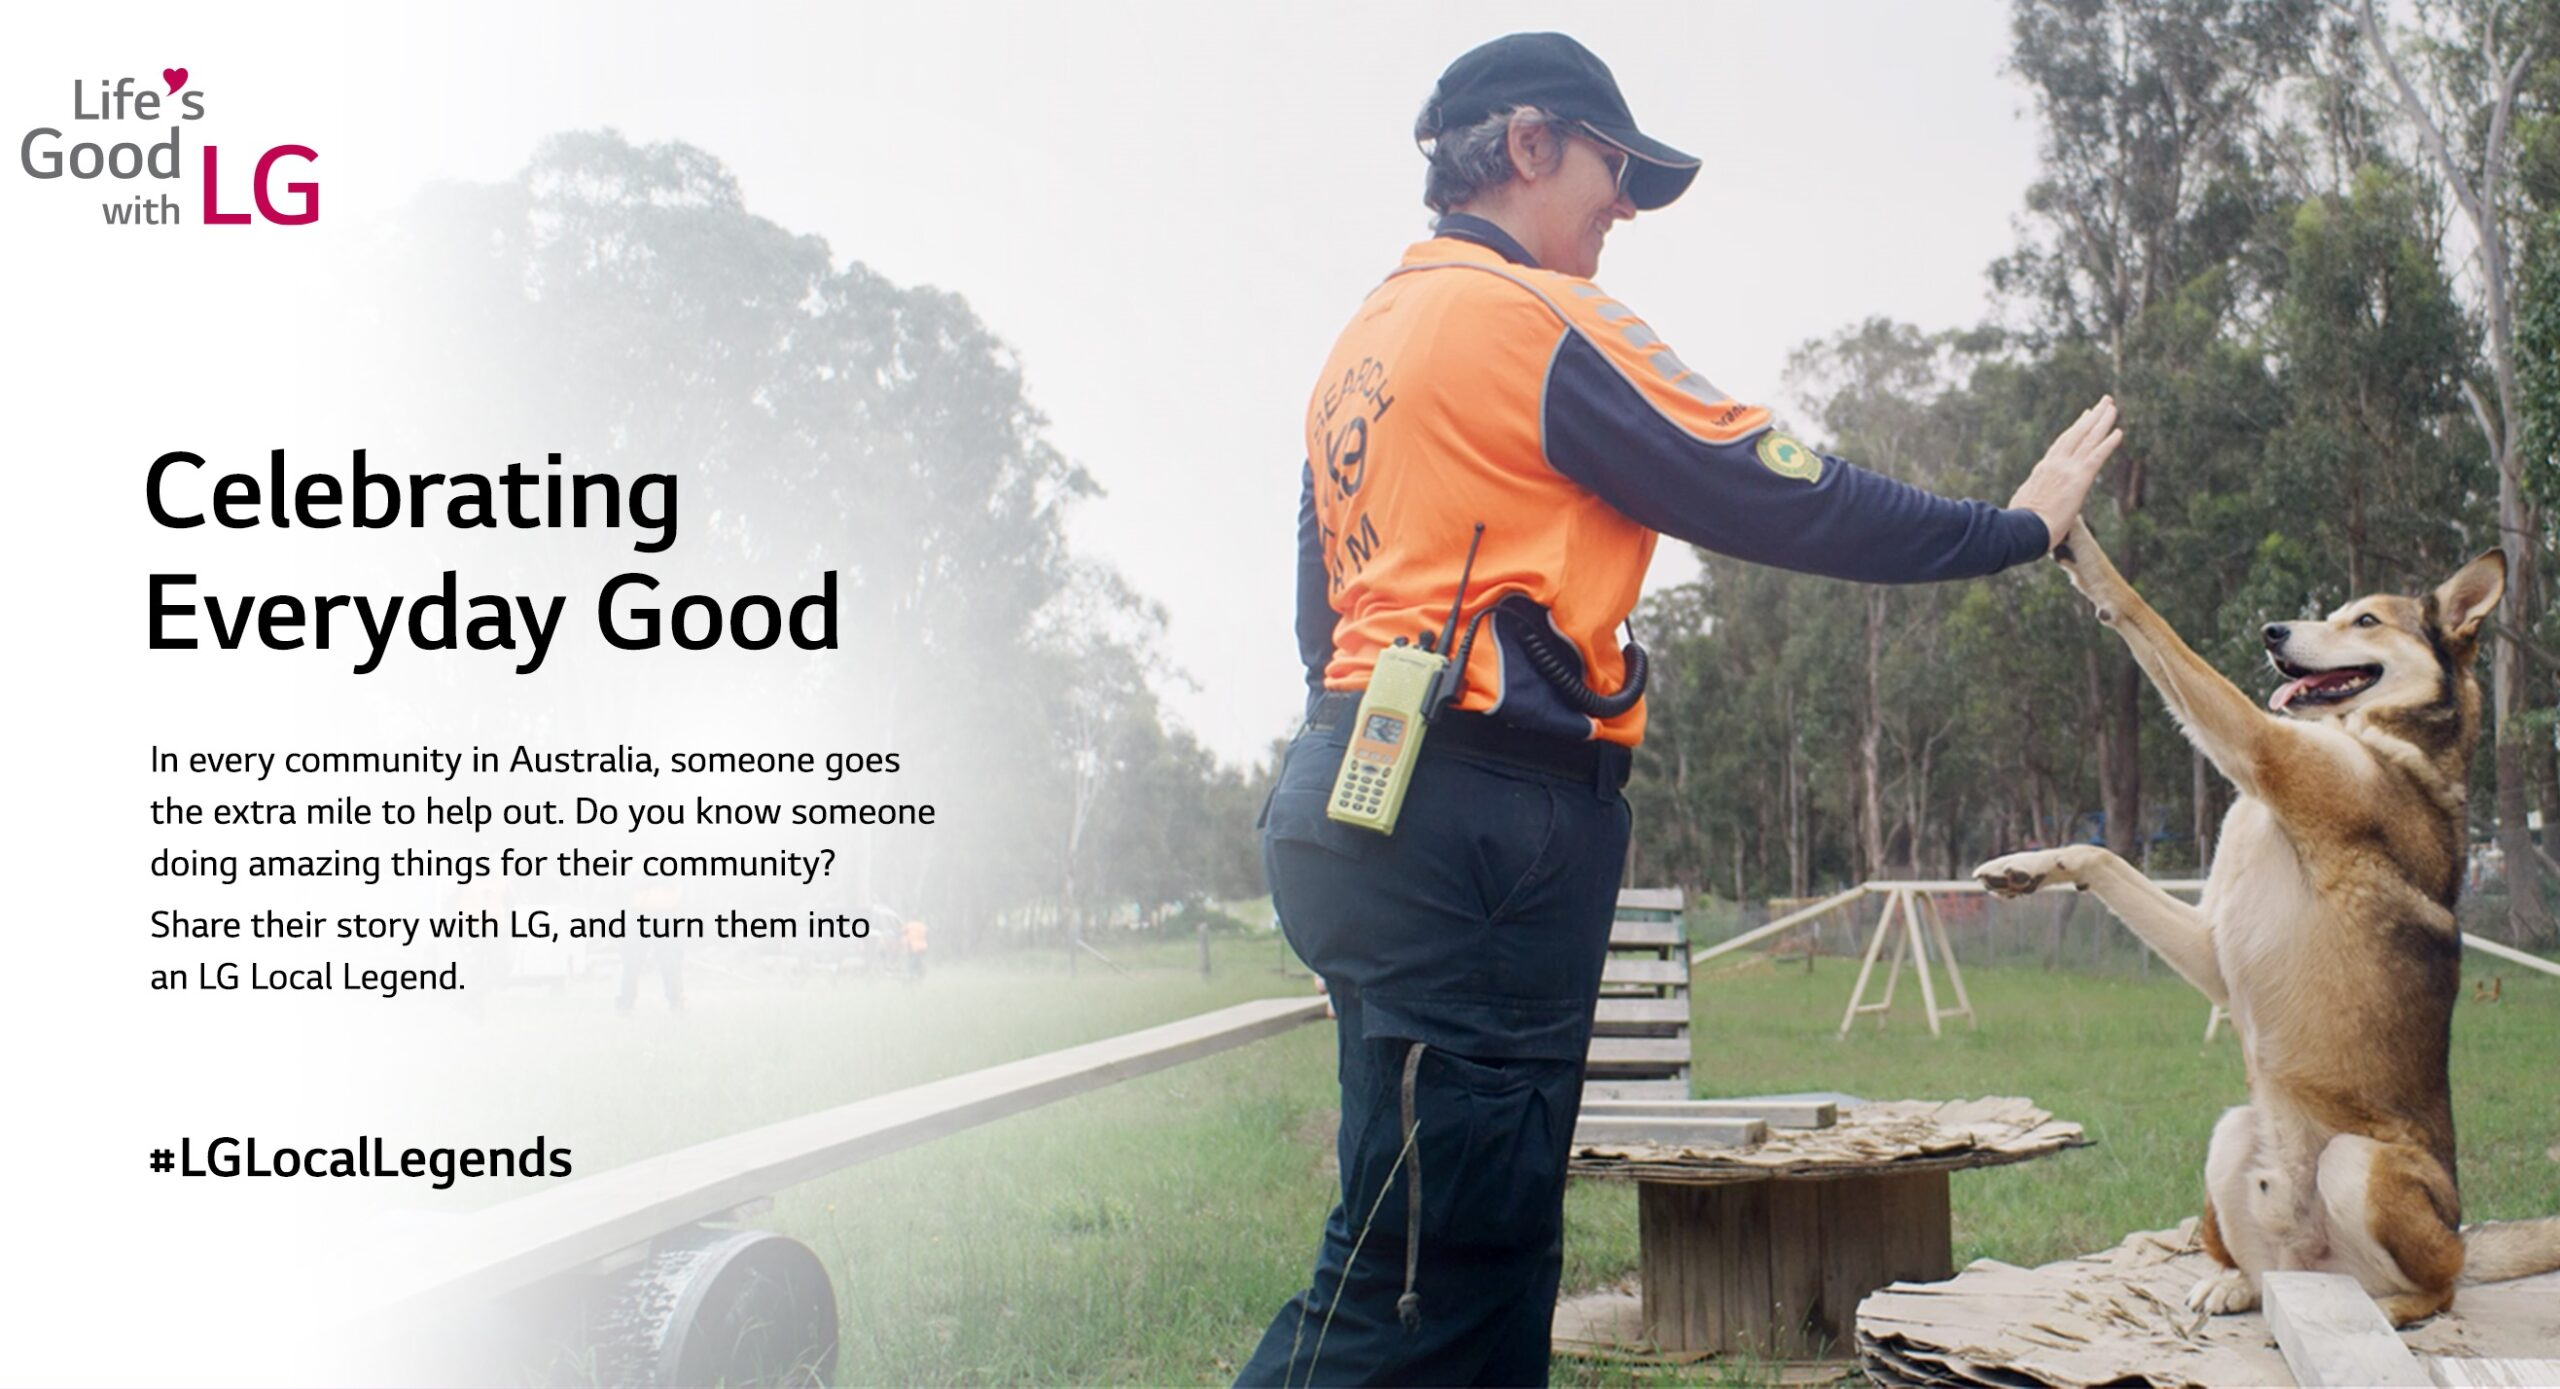 A promotional photo of the LG Local Legends program featuring a search dog and its trainer high fiving.